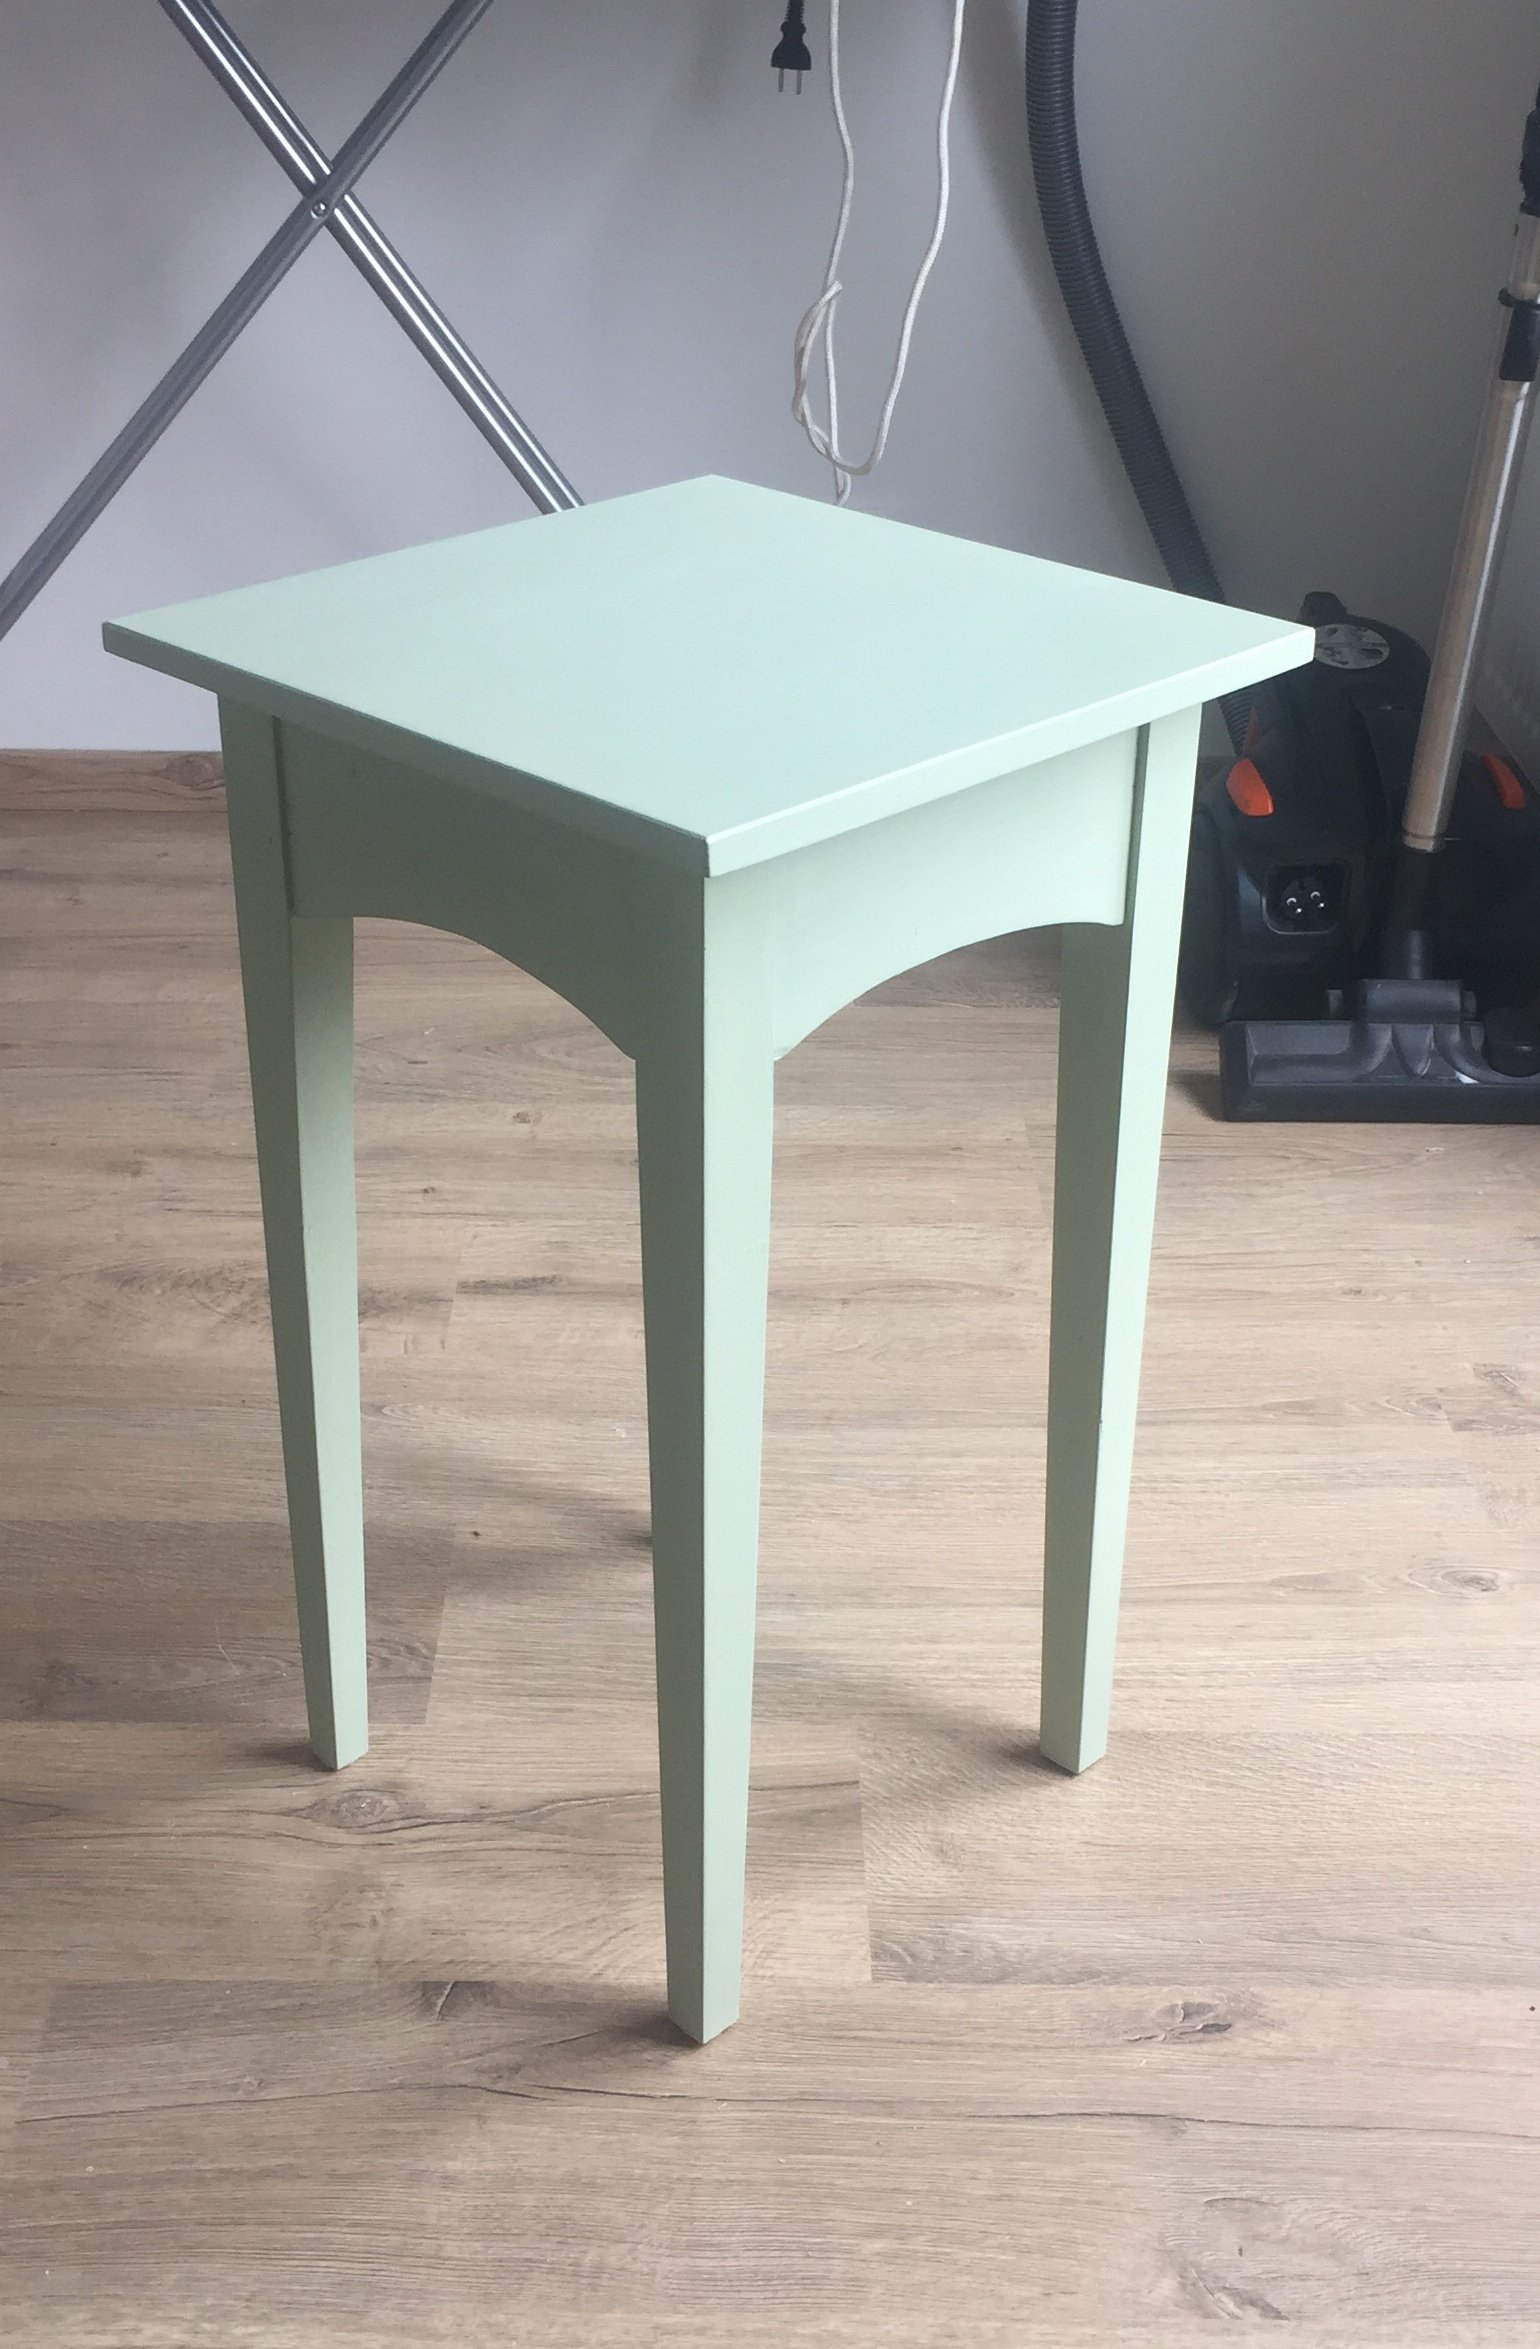 Table by Benoît Thomoux